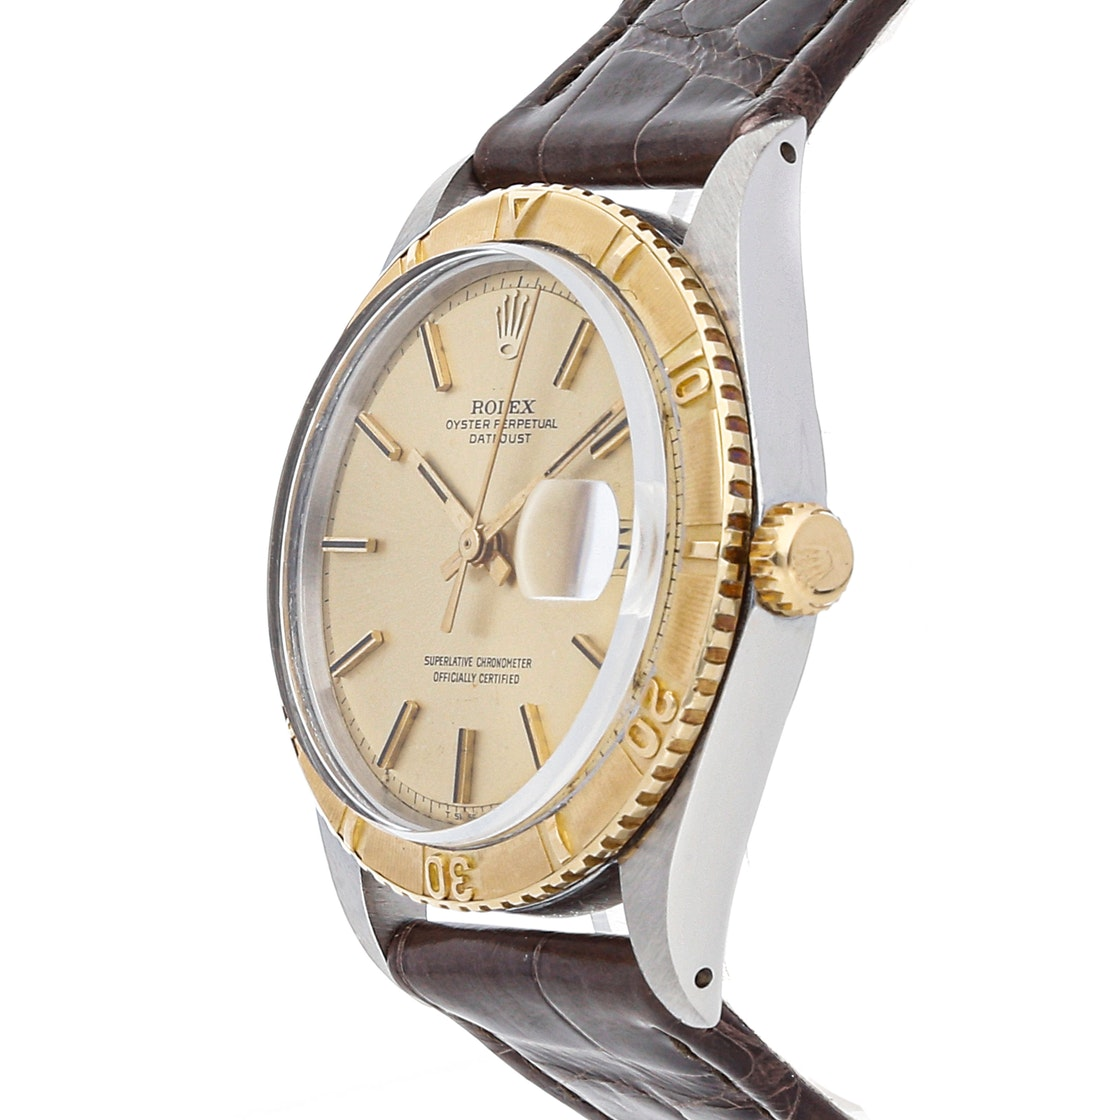 Rolex Vintage Datejust Thunderbird Turn-O-Graph 1625